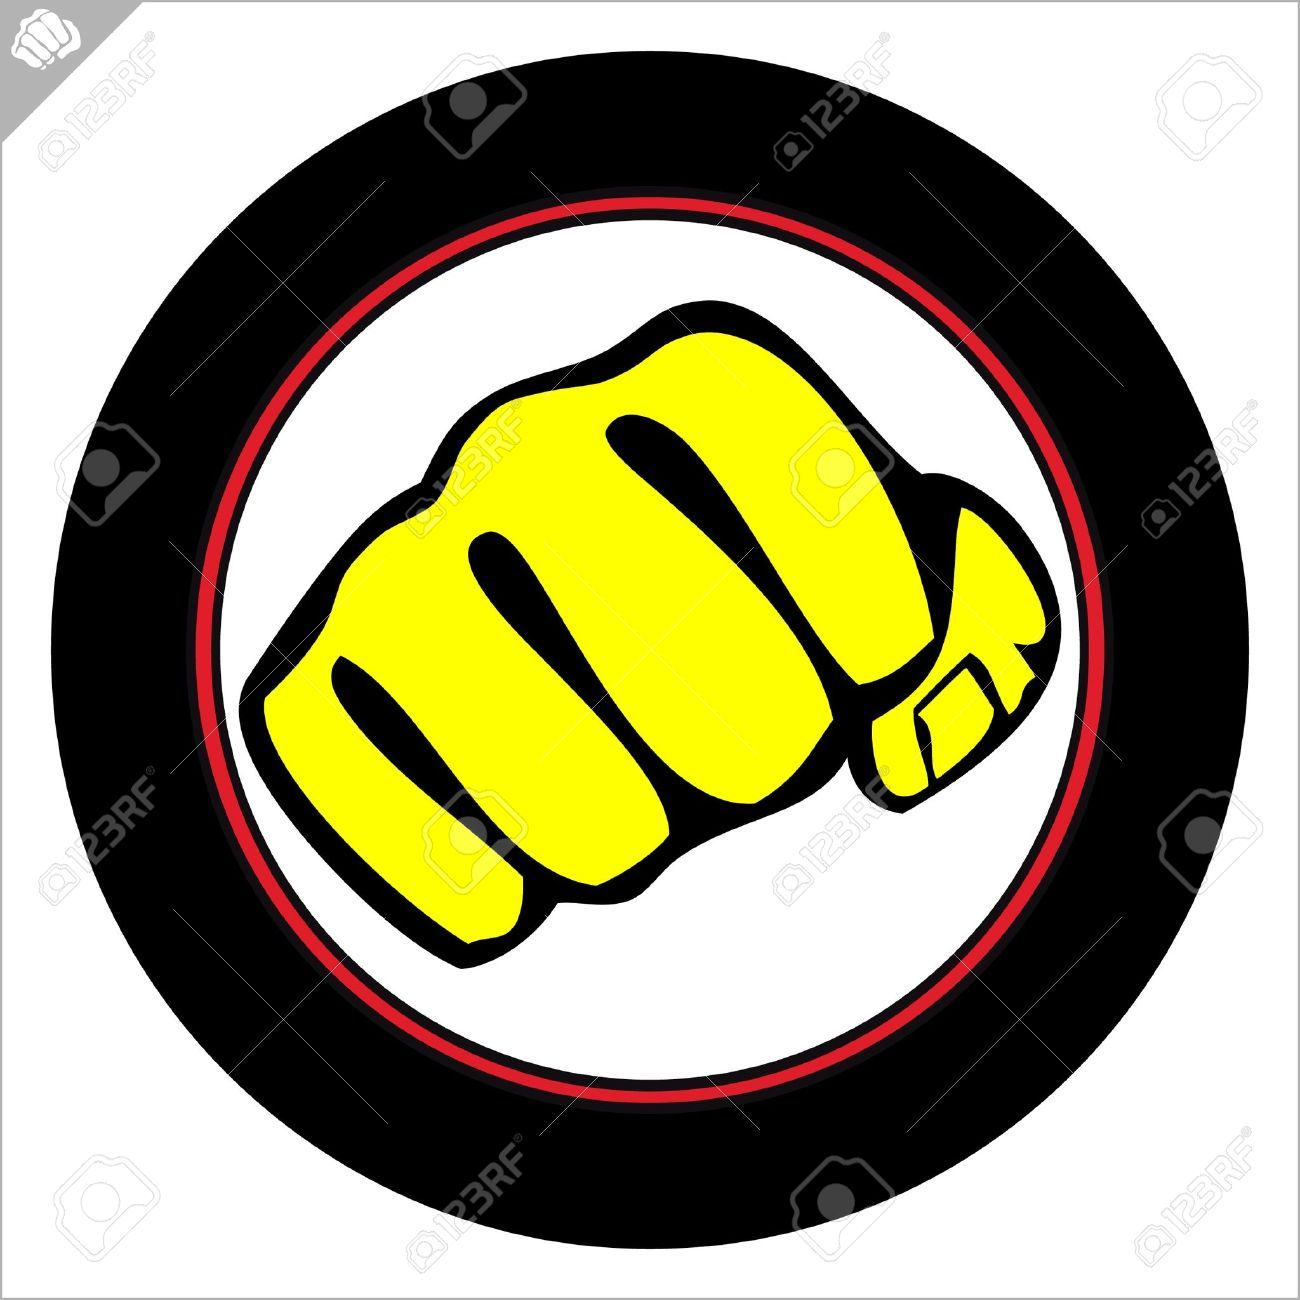 Fist Poster Martial Arts Colored Emblem Symbol Karate Style